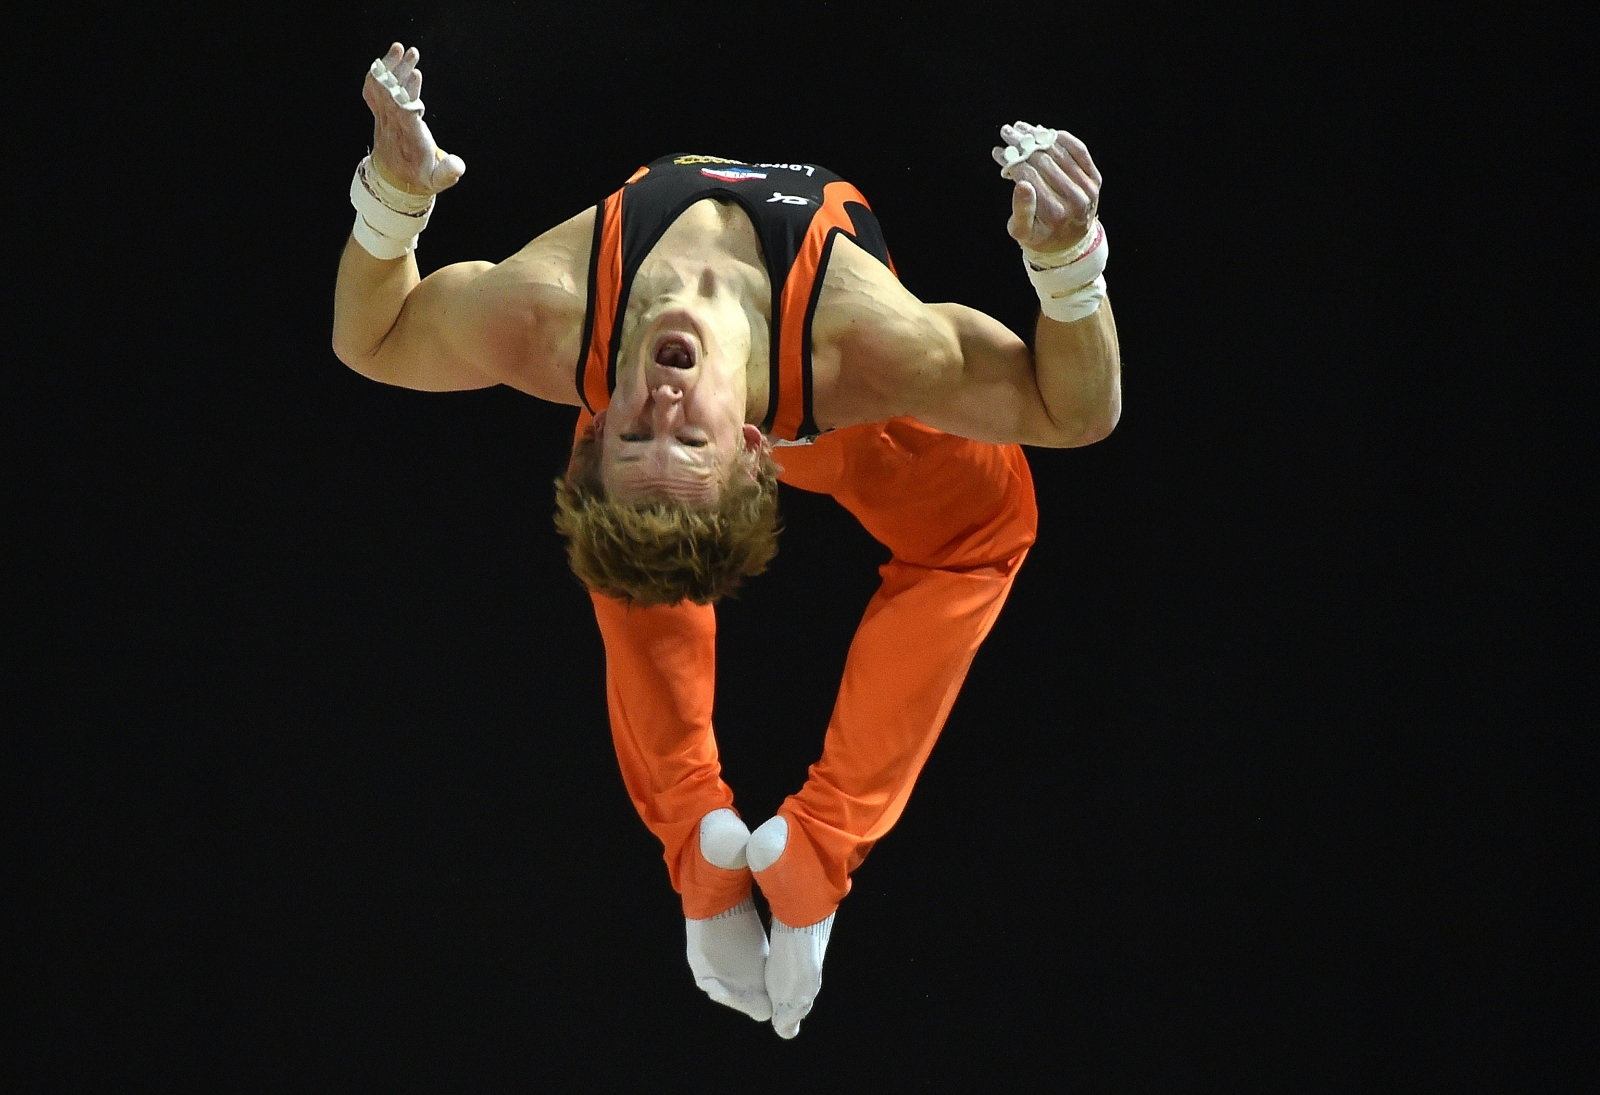 Rio 2016 olympics epke zonderland aiming for perfect for Upullandpay